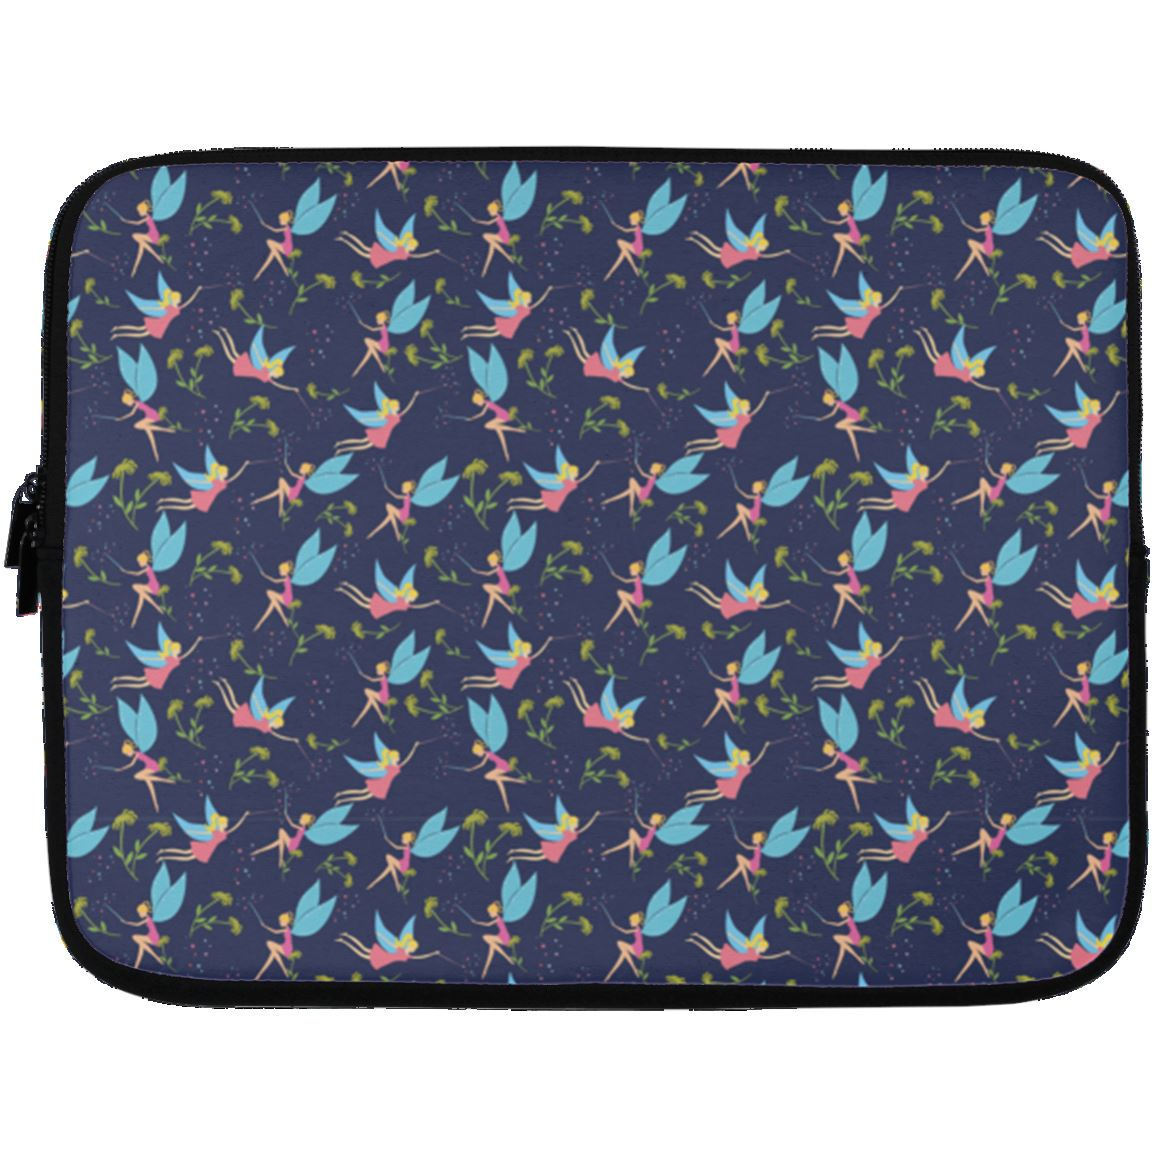 Fairy Fantasy Laptop Sleeve Apparel Laptop Sleeve - 13 inch White One Size